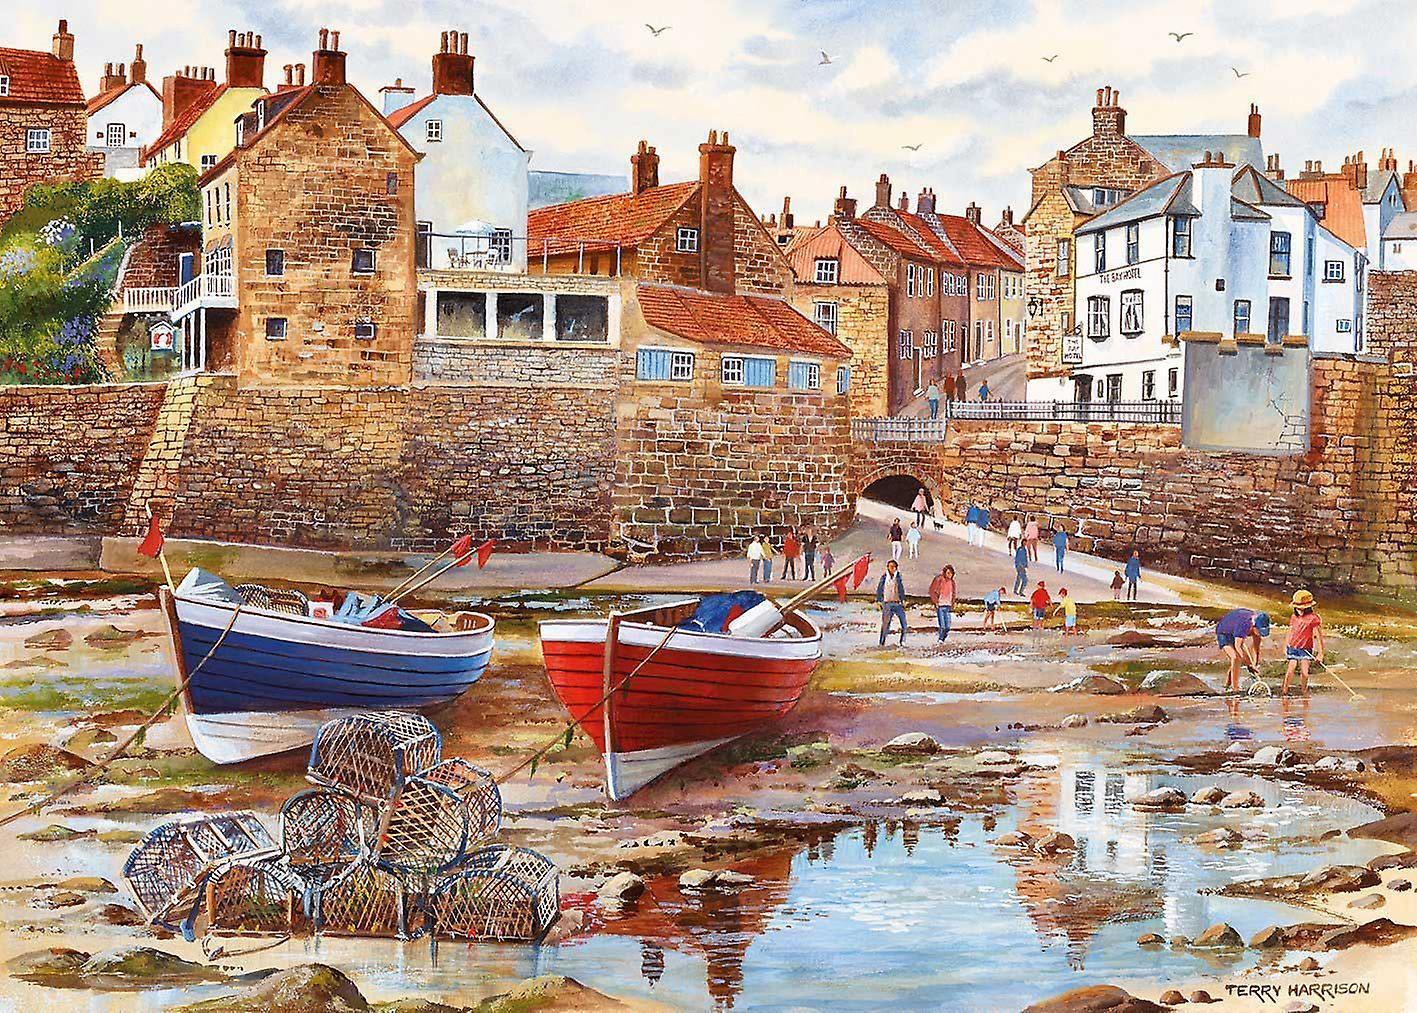 Gibsons Robin Hood's Bay Jigsaw Puzzle (1000 Pieces)